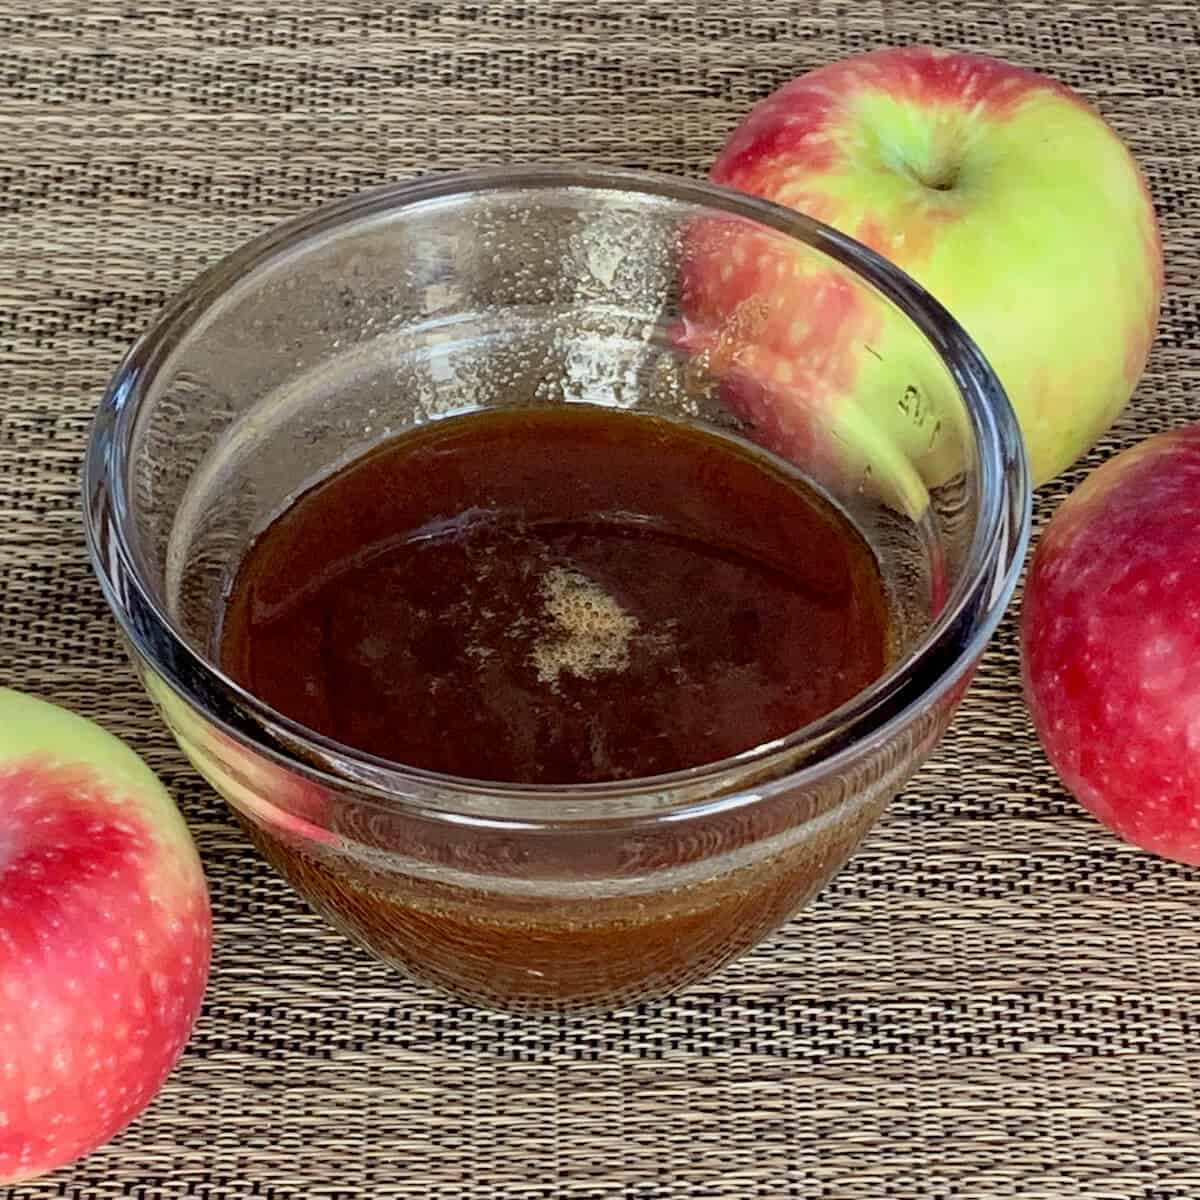 Boiled apple cider in a glass bowl with apples.